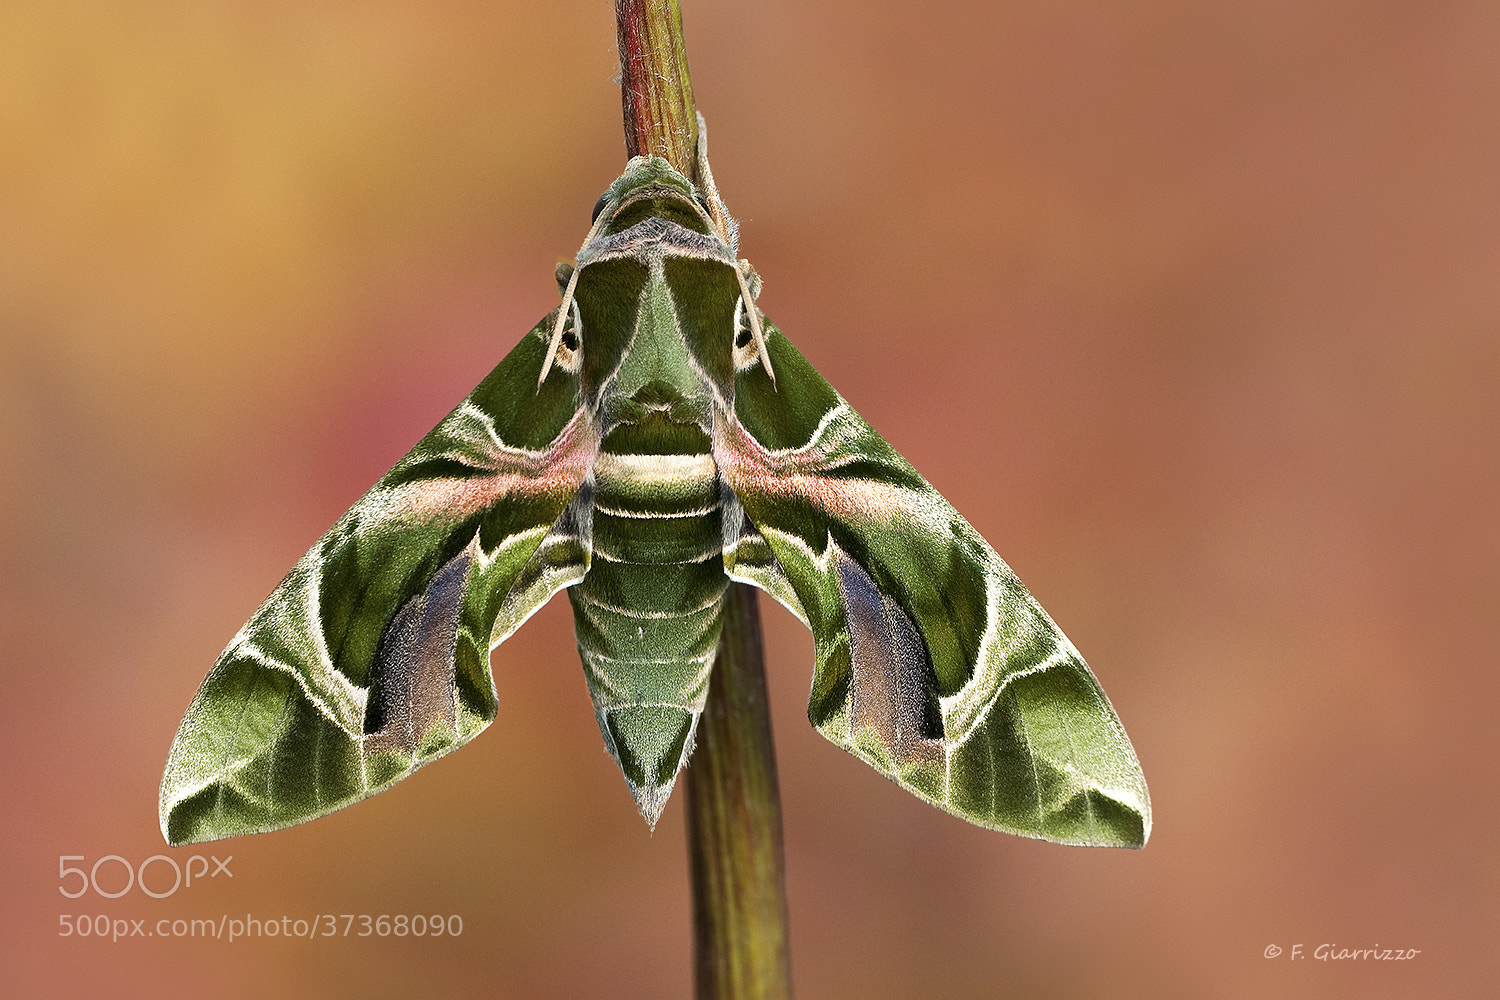 Photograph Oleander hawkmoth by Fabio Giarrizzo on 500px